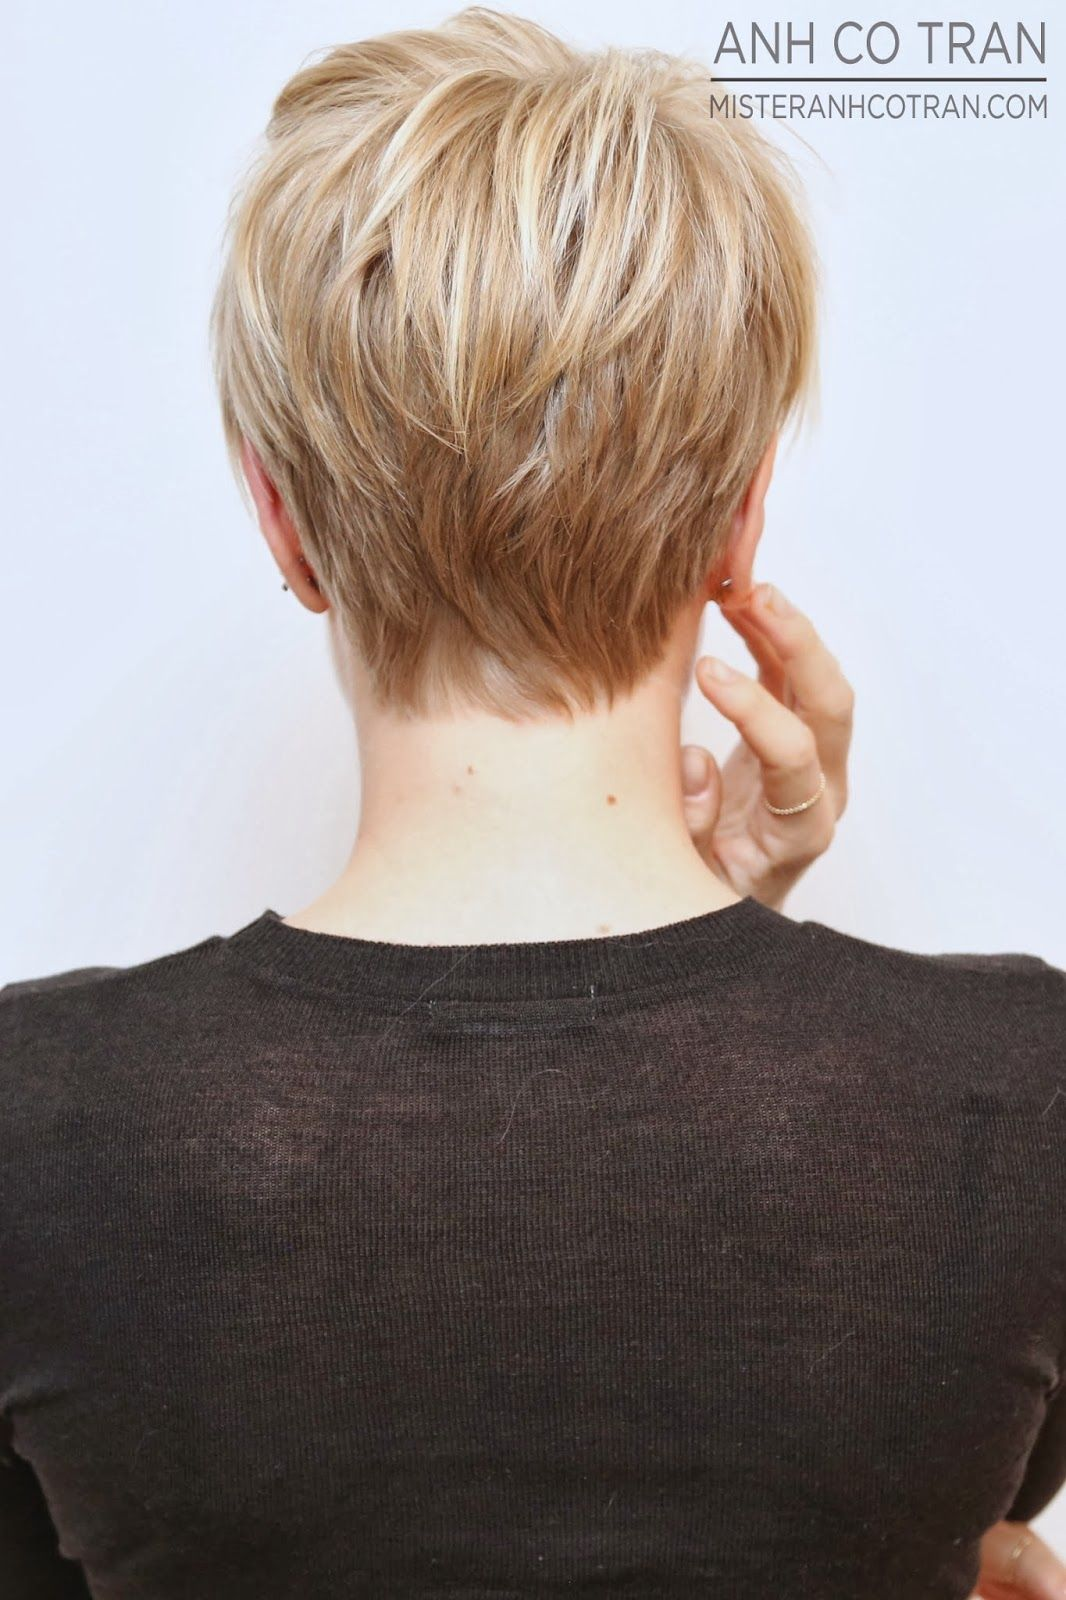 back view - michelle williams type short pixie | cortes | pinterest